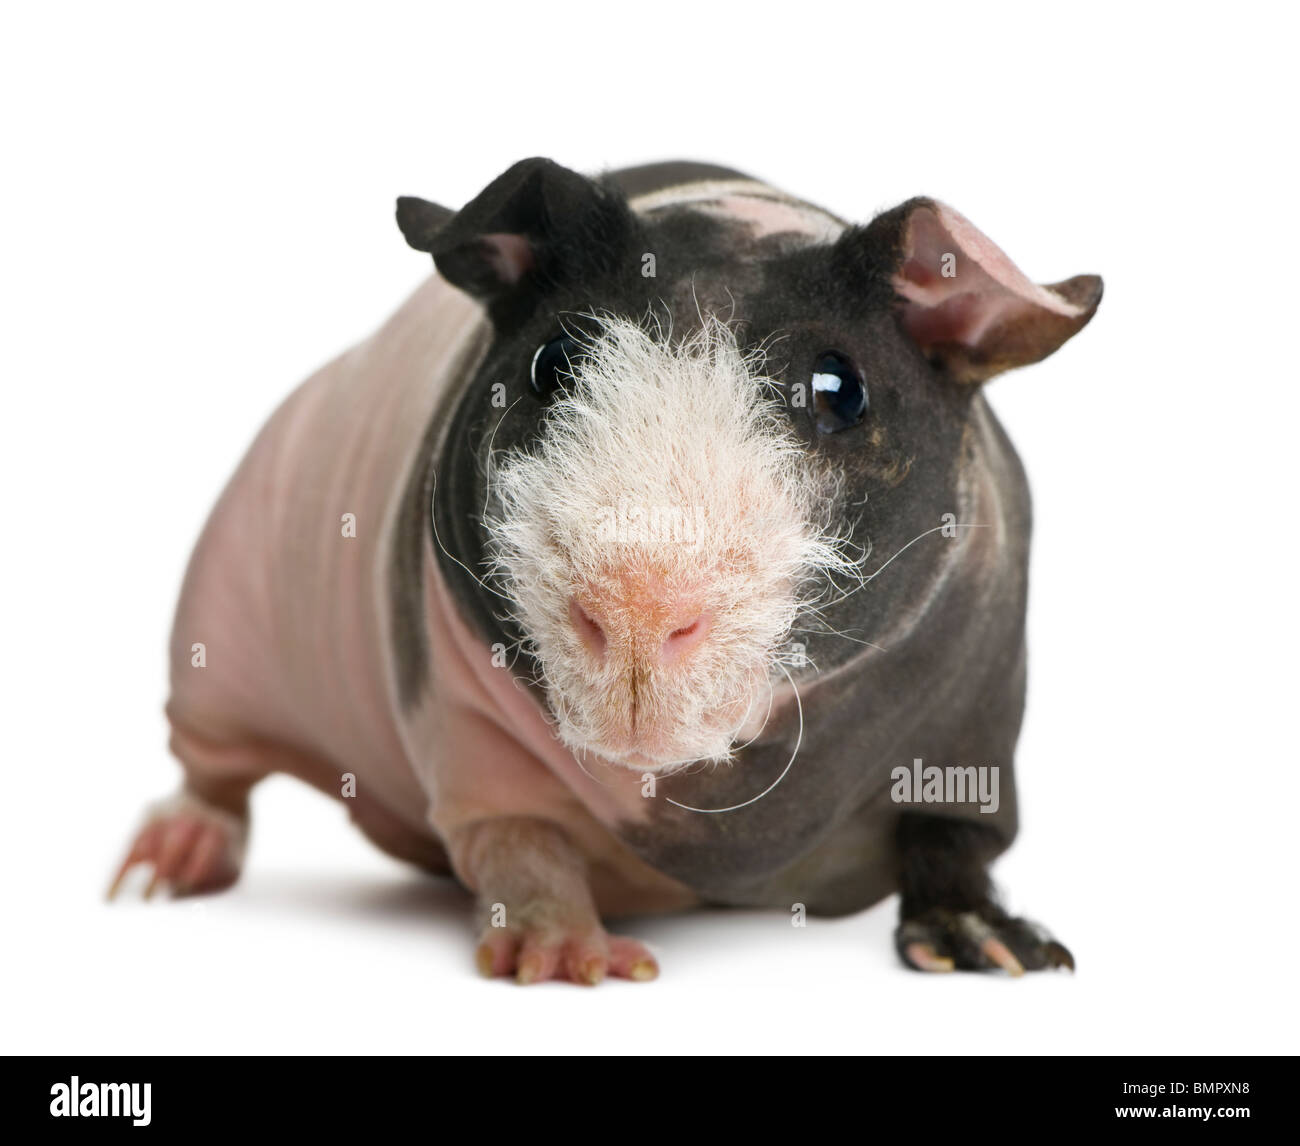 Hairless Guinea Pig standing against white background - Stock Image